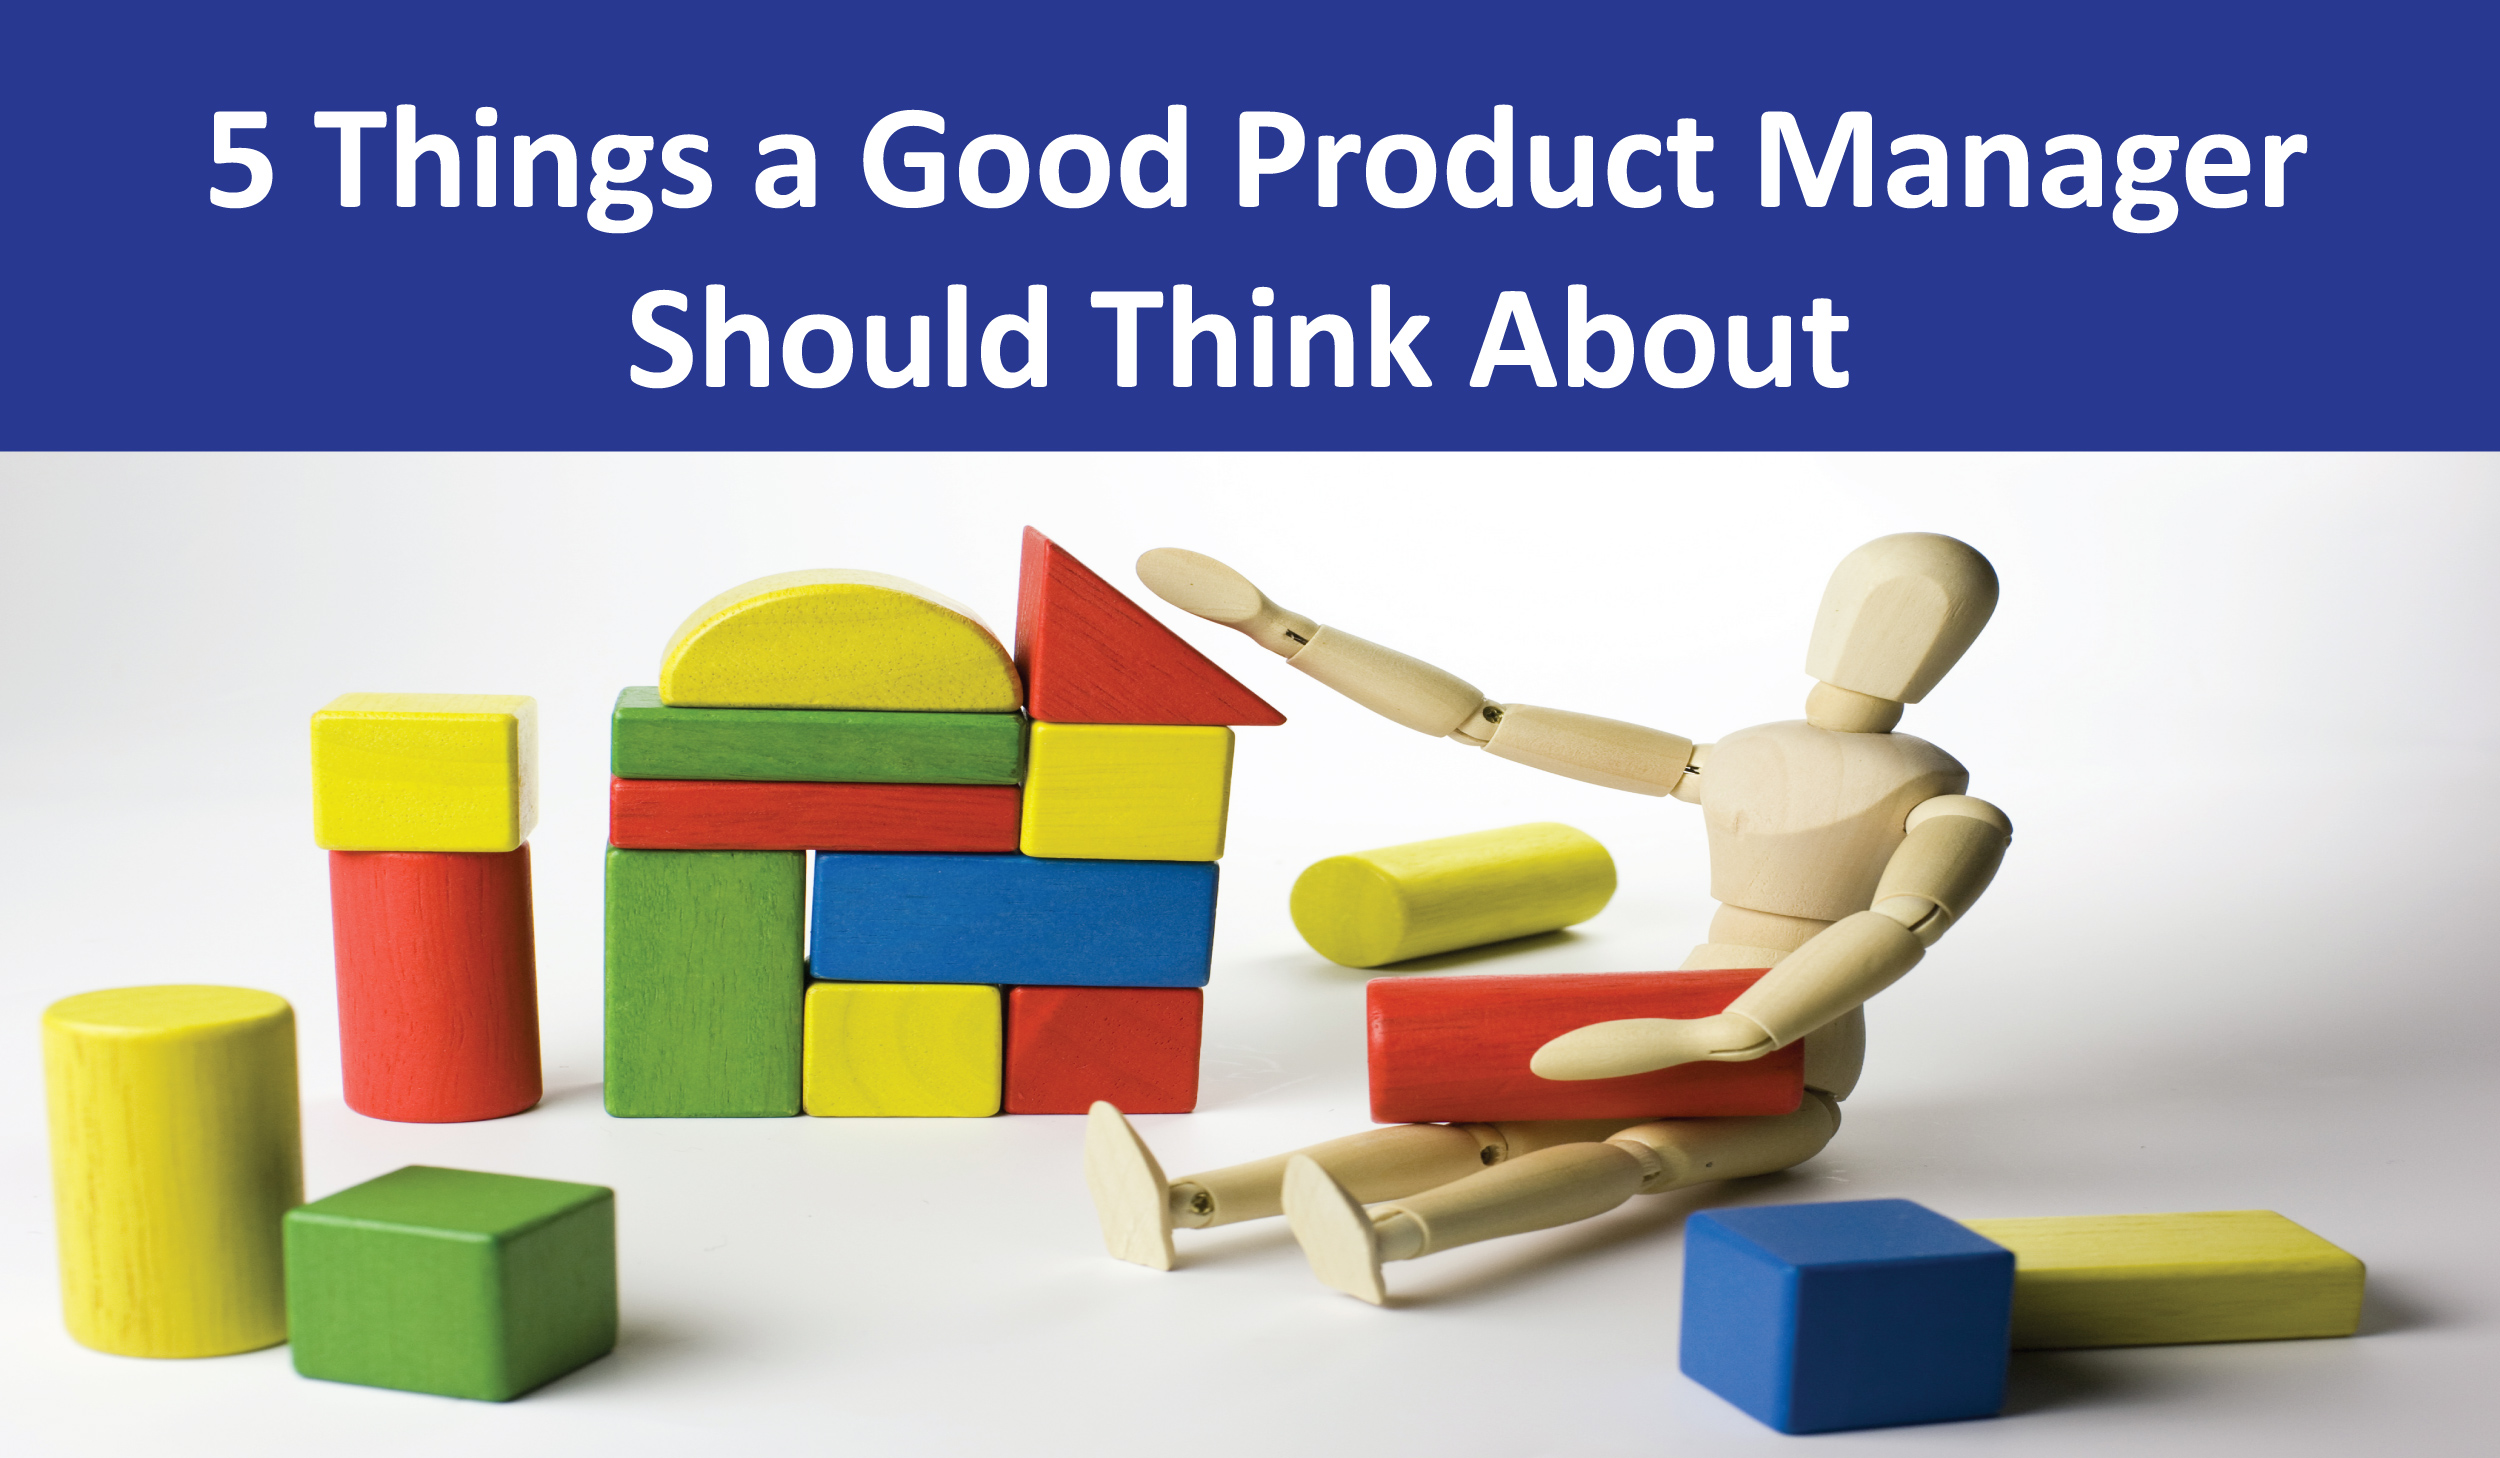 5 Things a Good Product Manager Should Think About